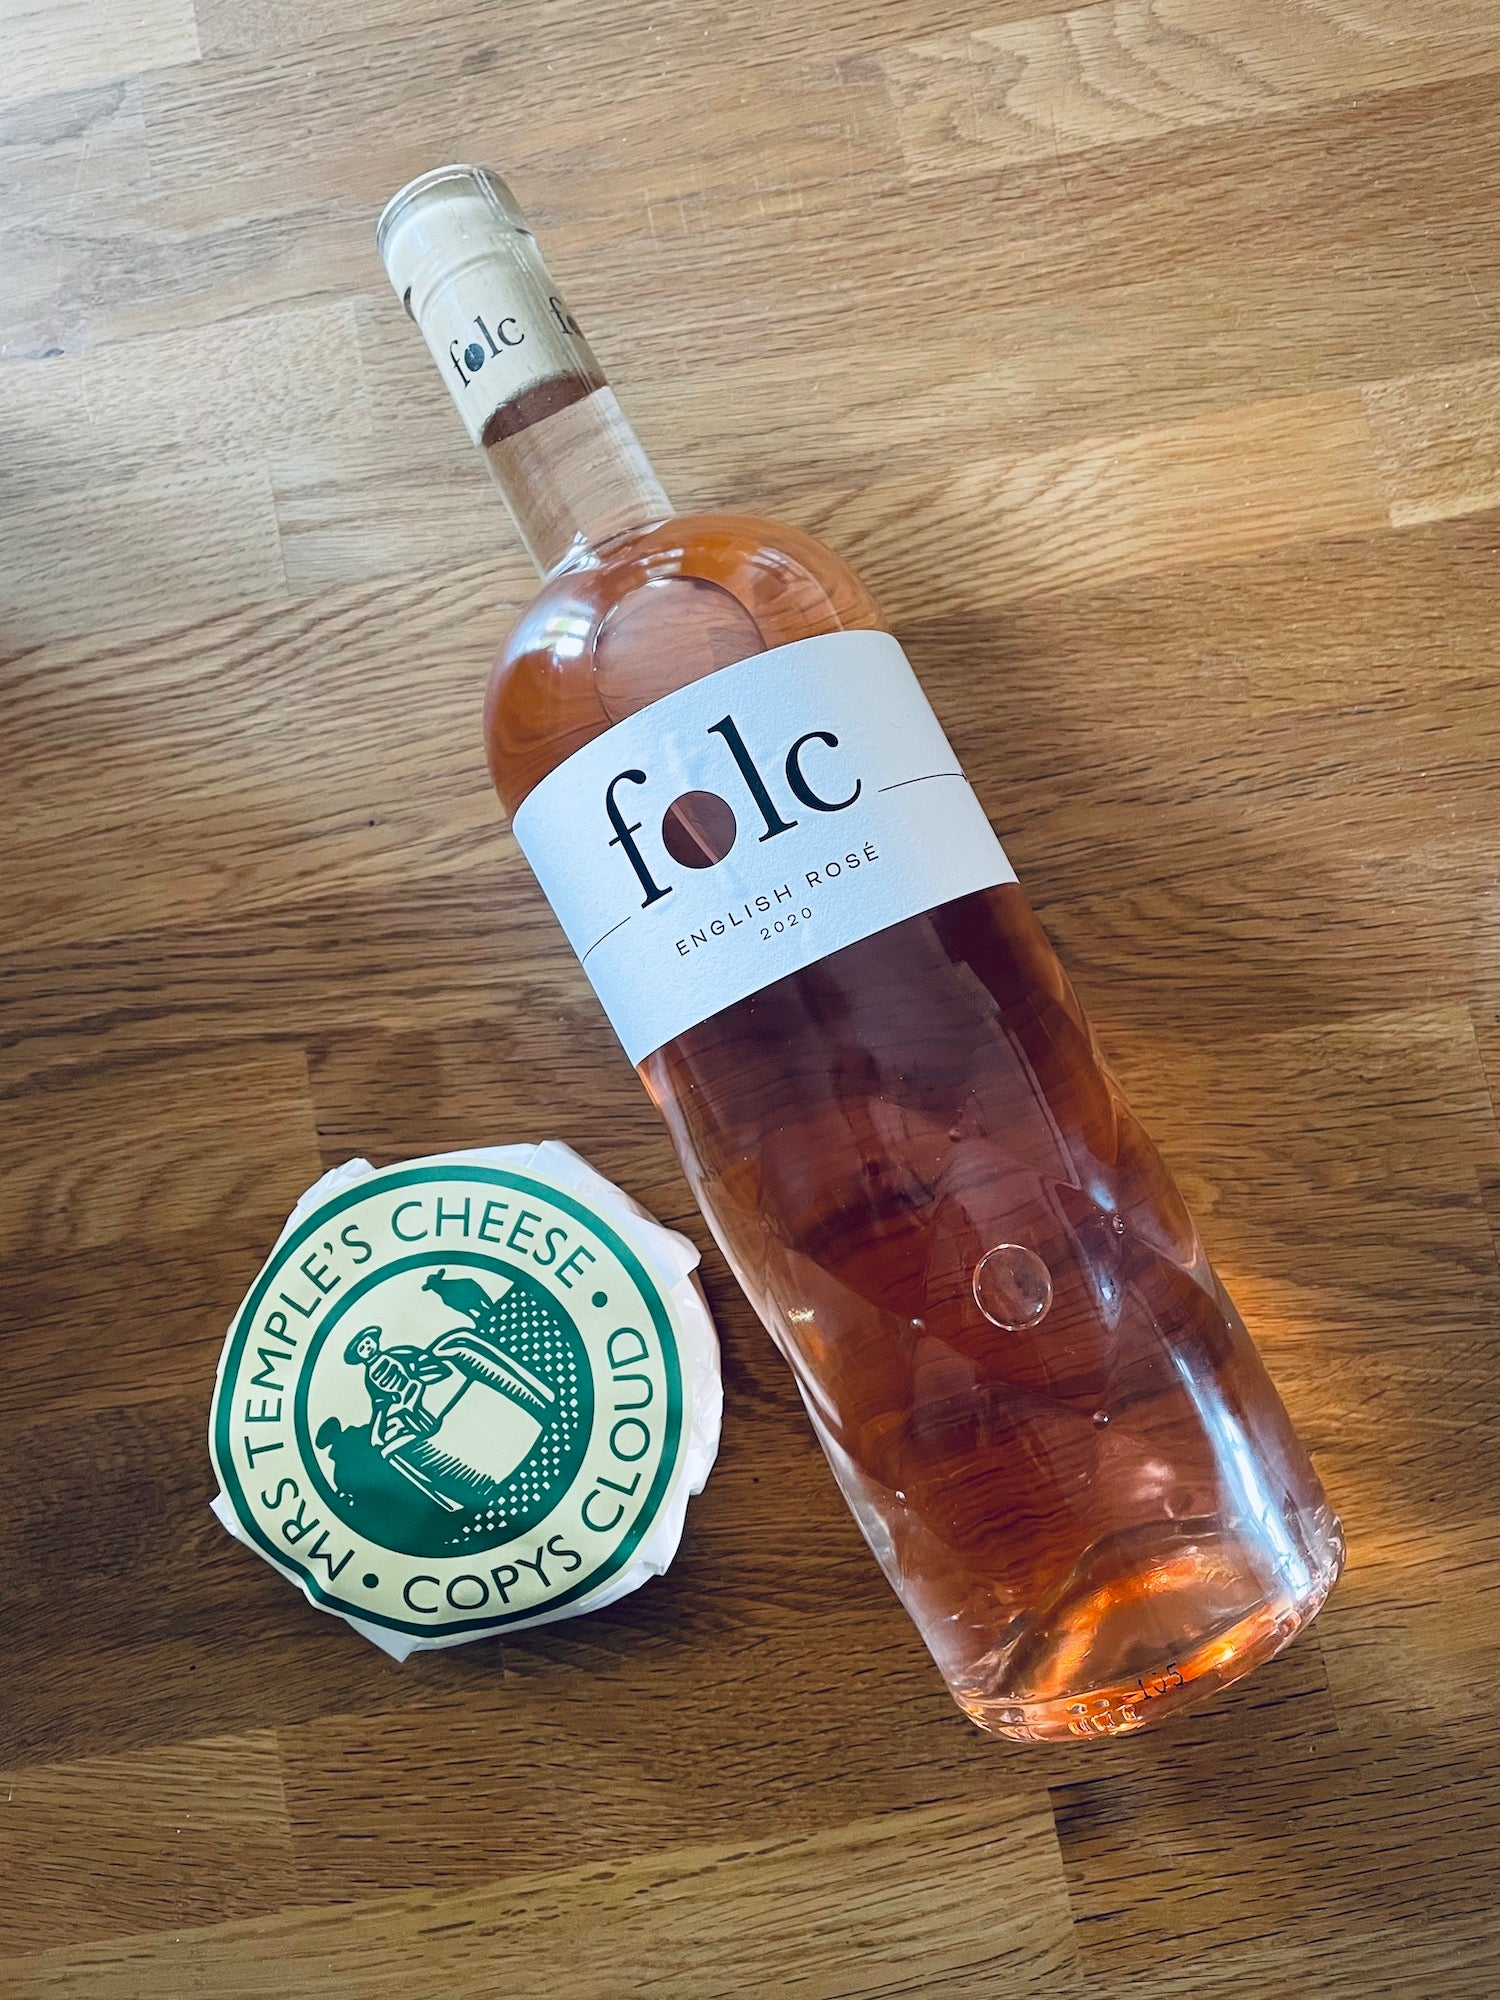 Copys Cloud cheese with Folc English Rosé